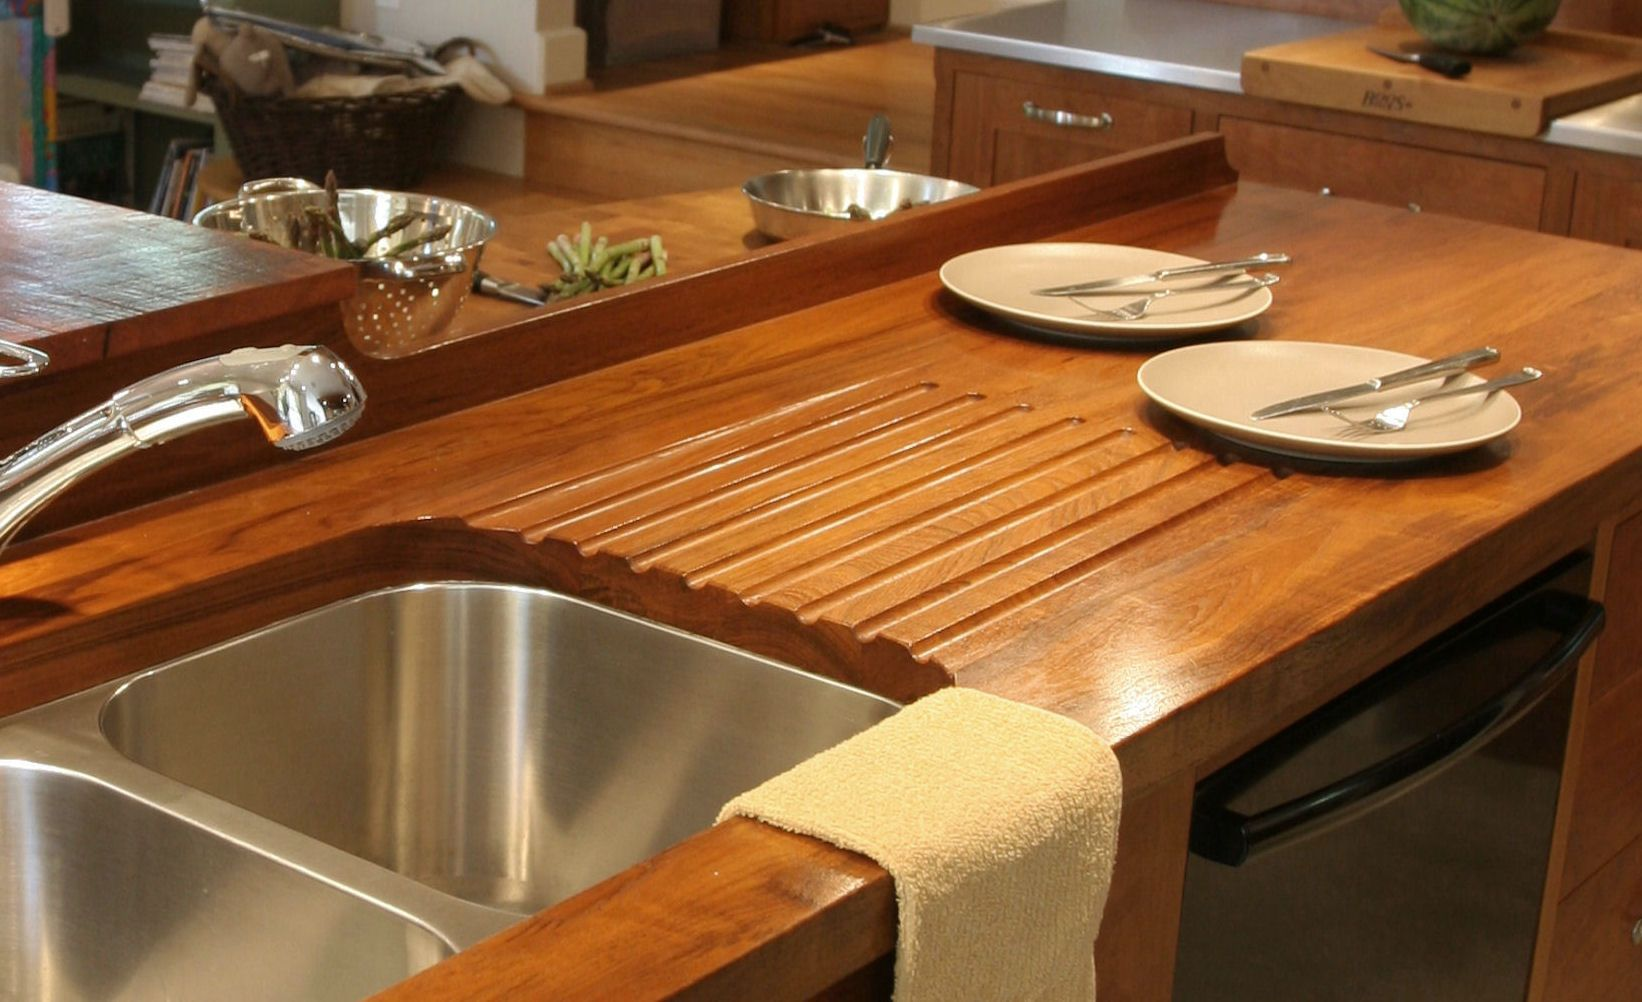 Countertop Finish Options : Teak face grain countertop including an integrated sloping drainboard ...